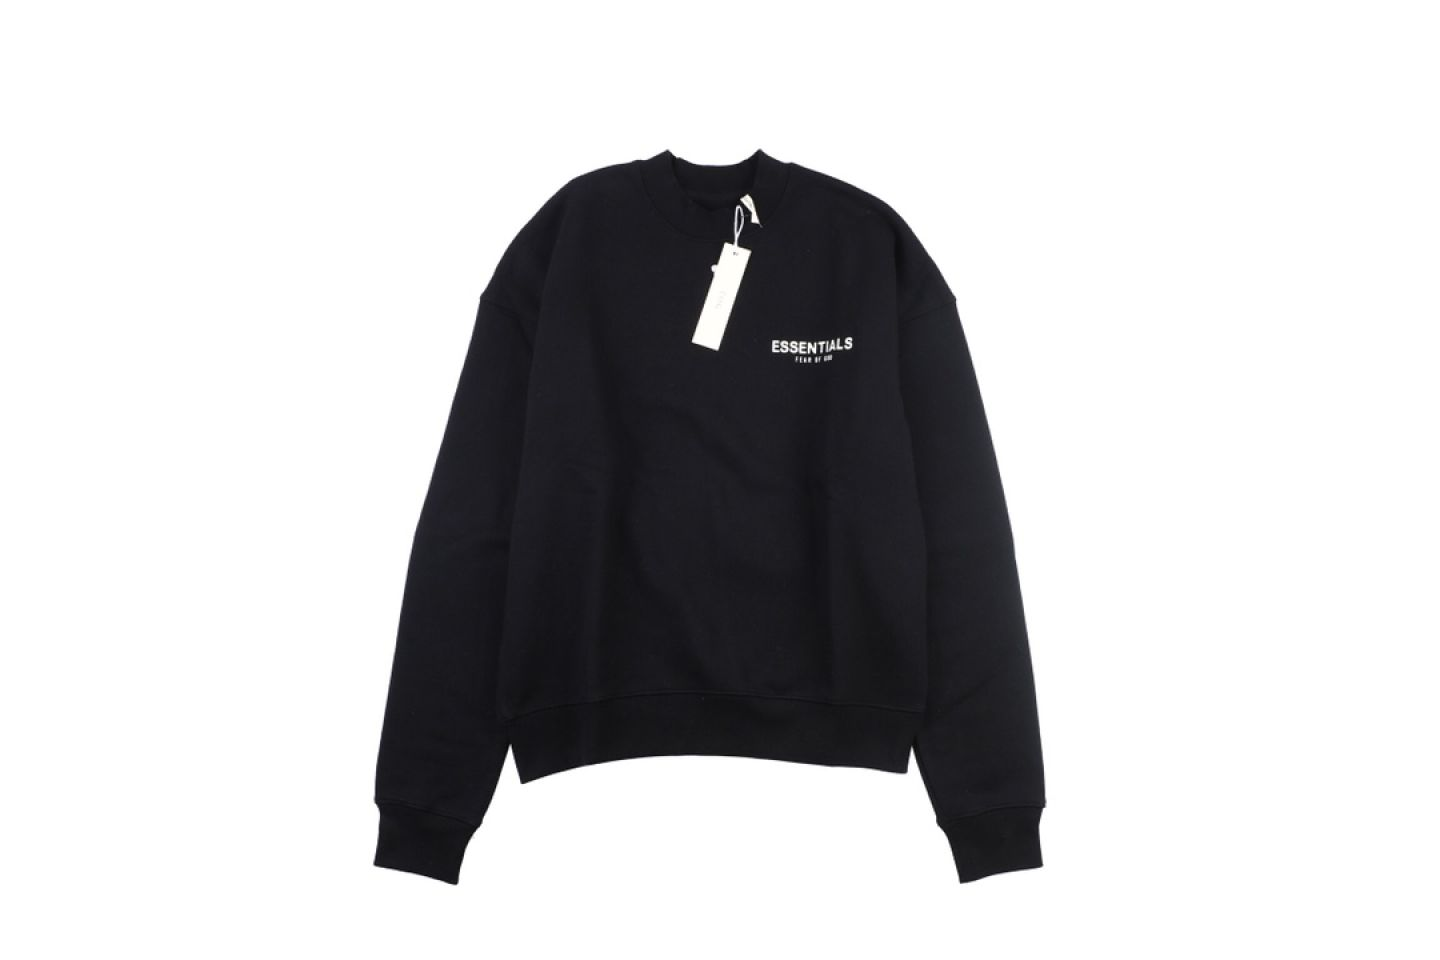 """Shirt Fear Of God Essential double line crew neck sweater """"Black"""" 1 fear_of_god_essential_double_line_crew_neck_sweater_black_1"""